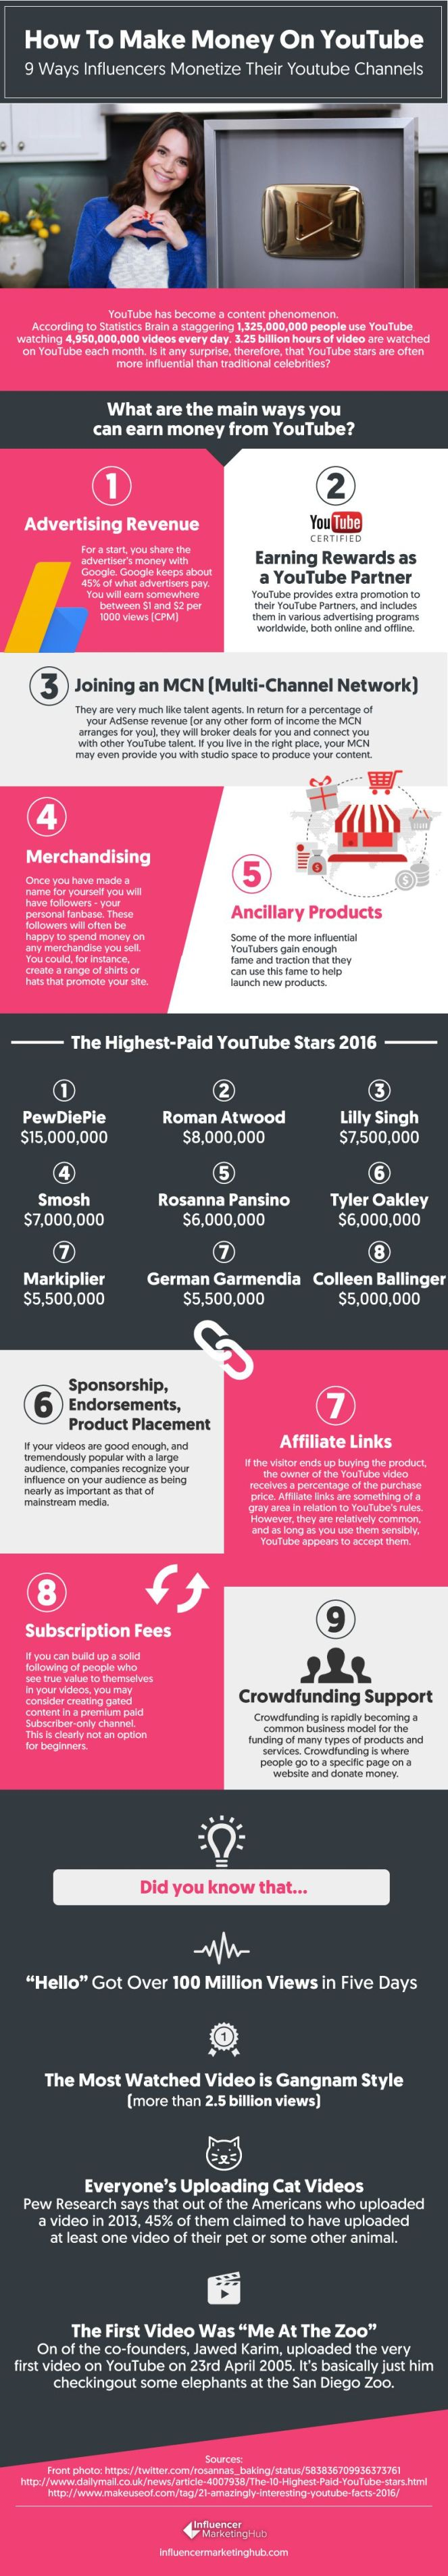 How to Make Money on Youtube [Infographic]